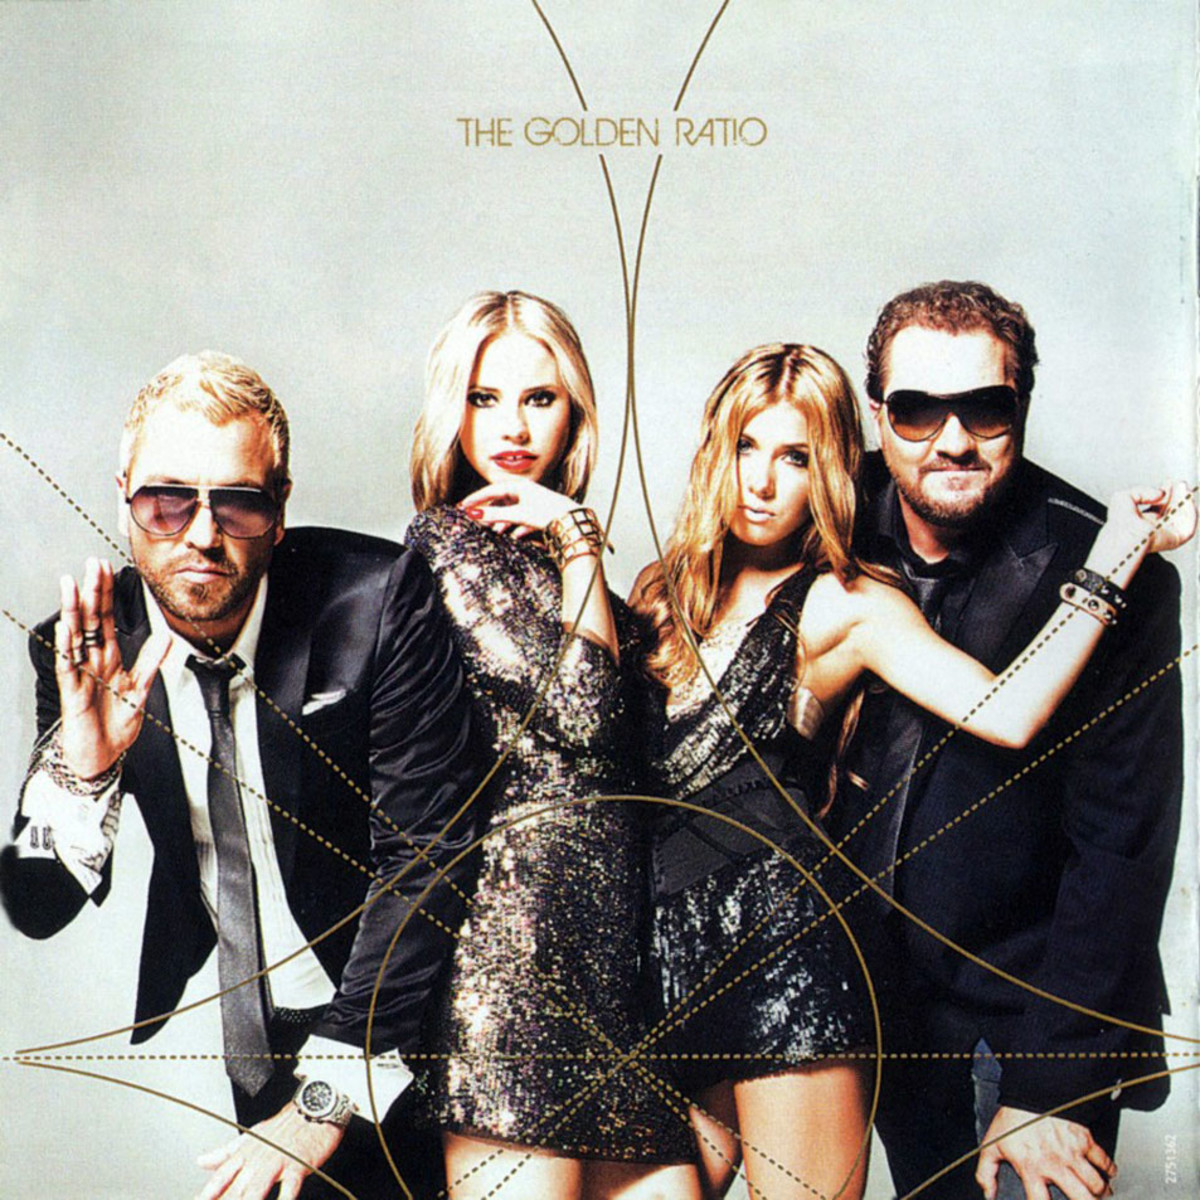 review-of-the-album-the-golden-ratio-by-swedish-pop-and-techno-band-ace-of-base